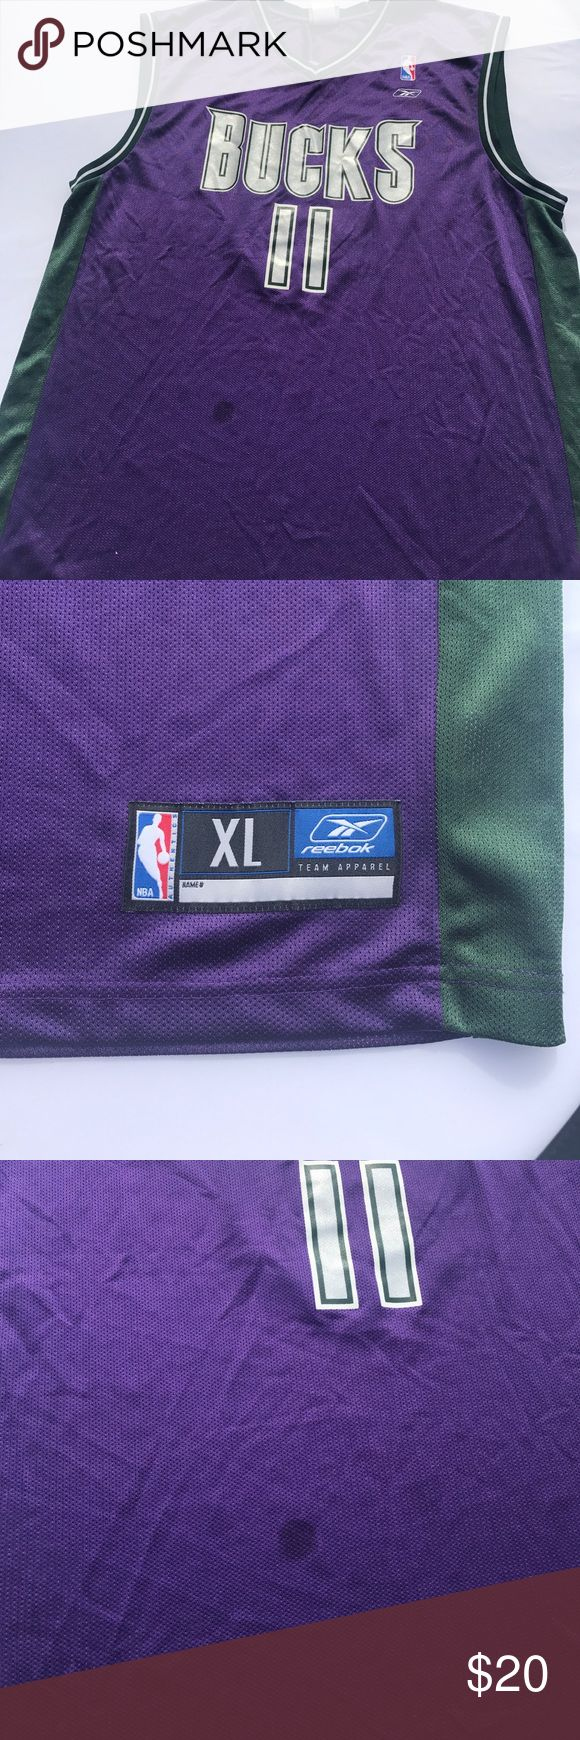 Nba Milwaukee bucks t j ford 11 purple reebok Xl Milwaukee bucks purple a couple of stains but overall great jersey patches in great condition Reebok Jackets & Coats Performance Jackets